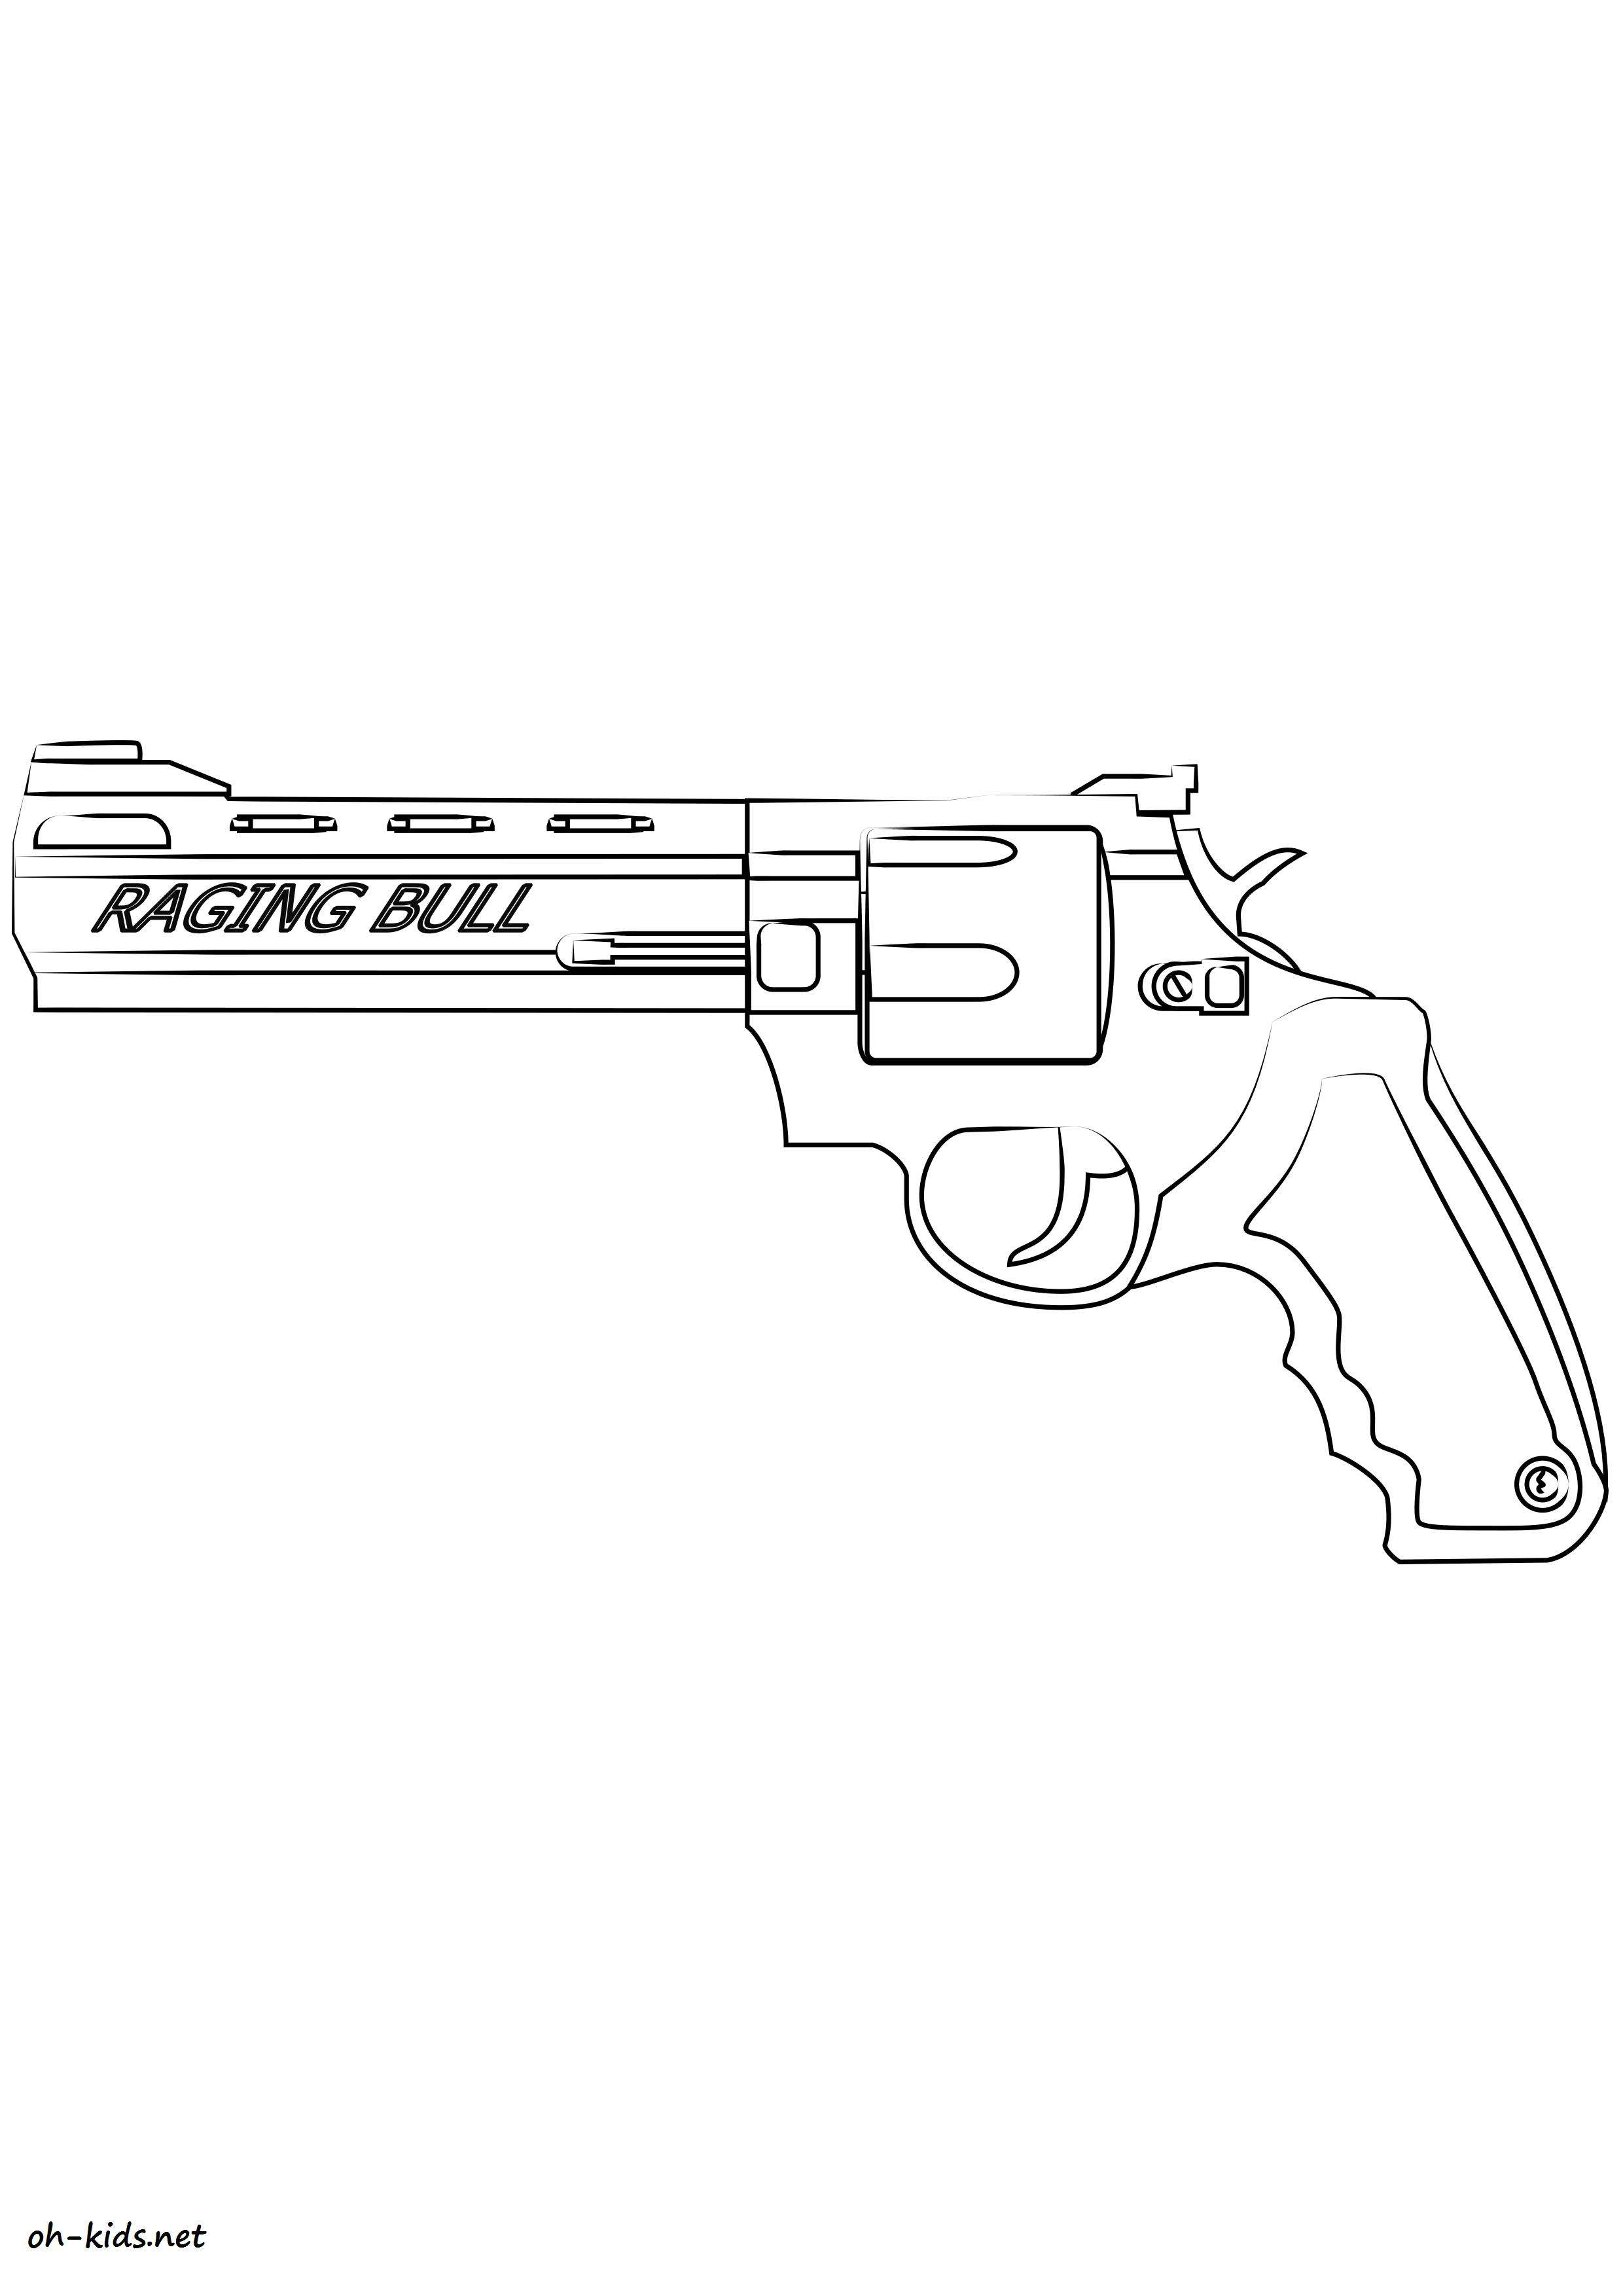 Coloriage A Imprimer Fortnite Arme.Coloriage Armes Page 3 Of 6 Oh Kids Fr